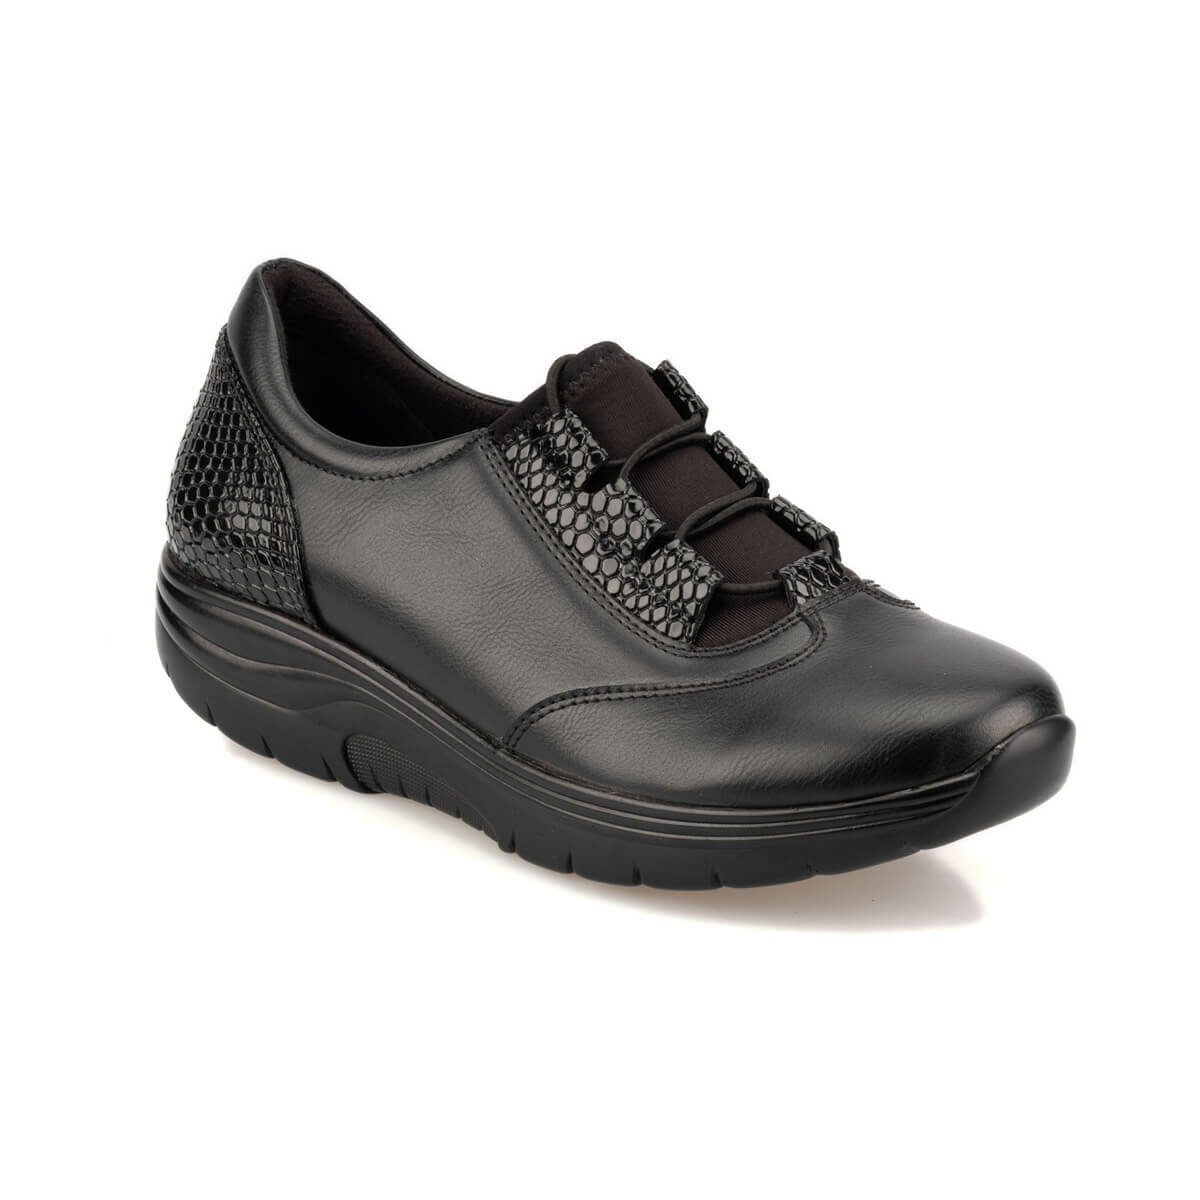 FLO TRV920060 Black Women 'S Sneaker Shoes Travel Soft